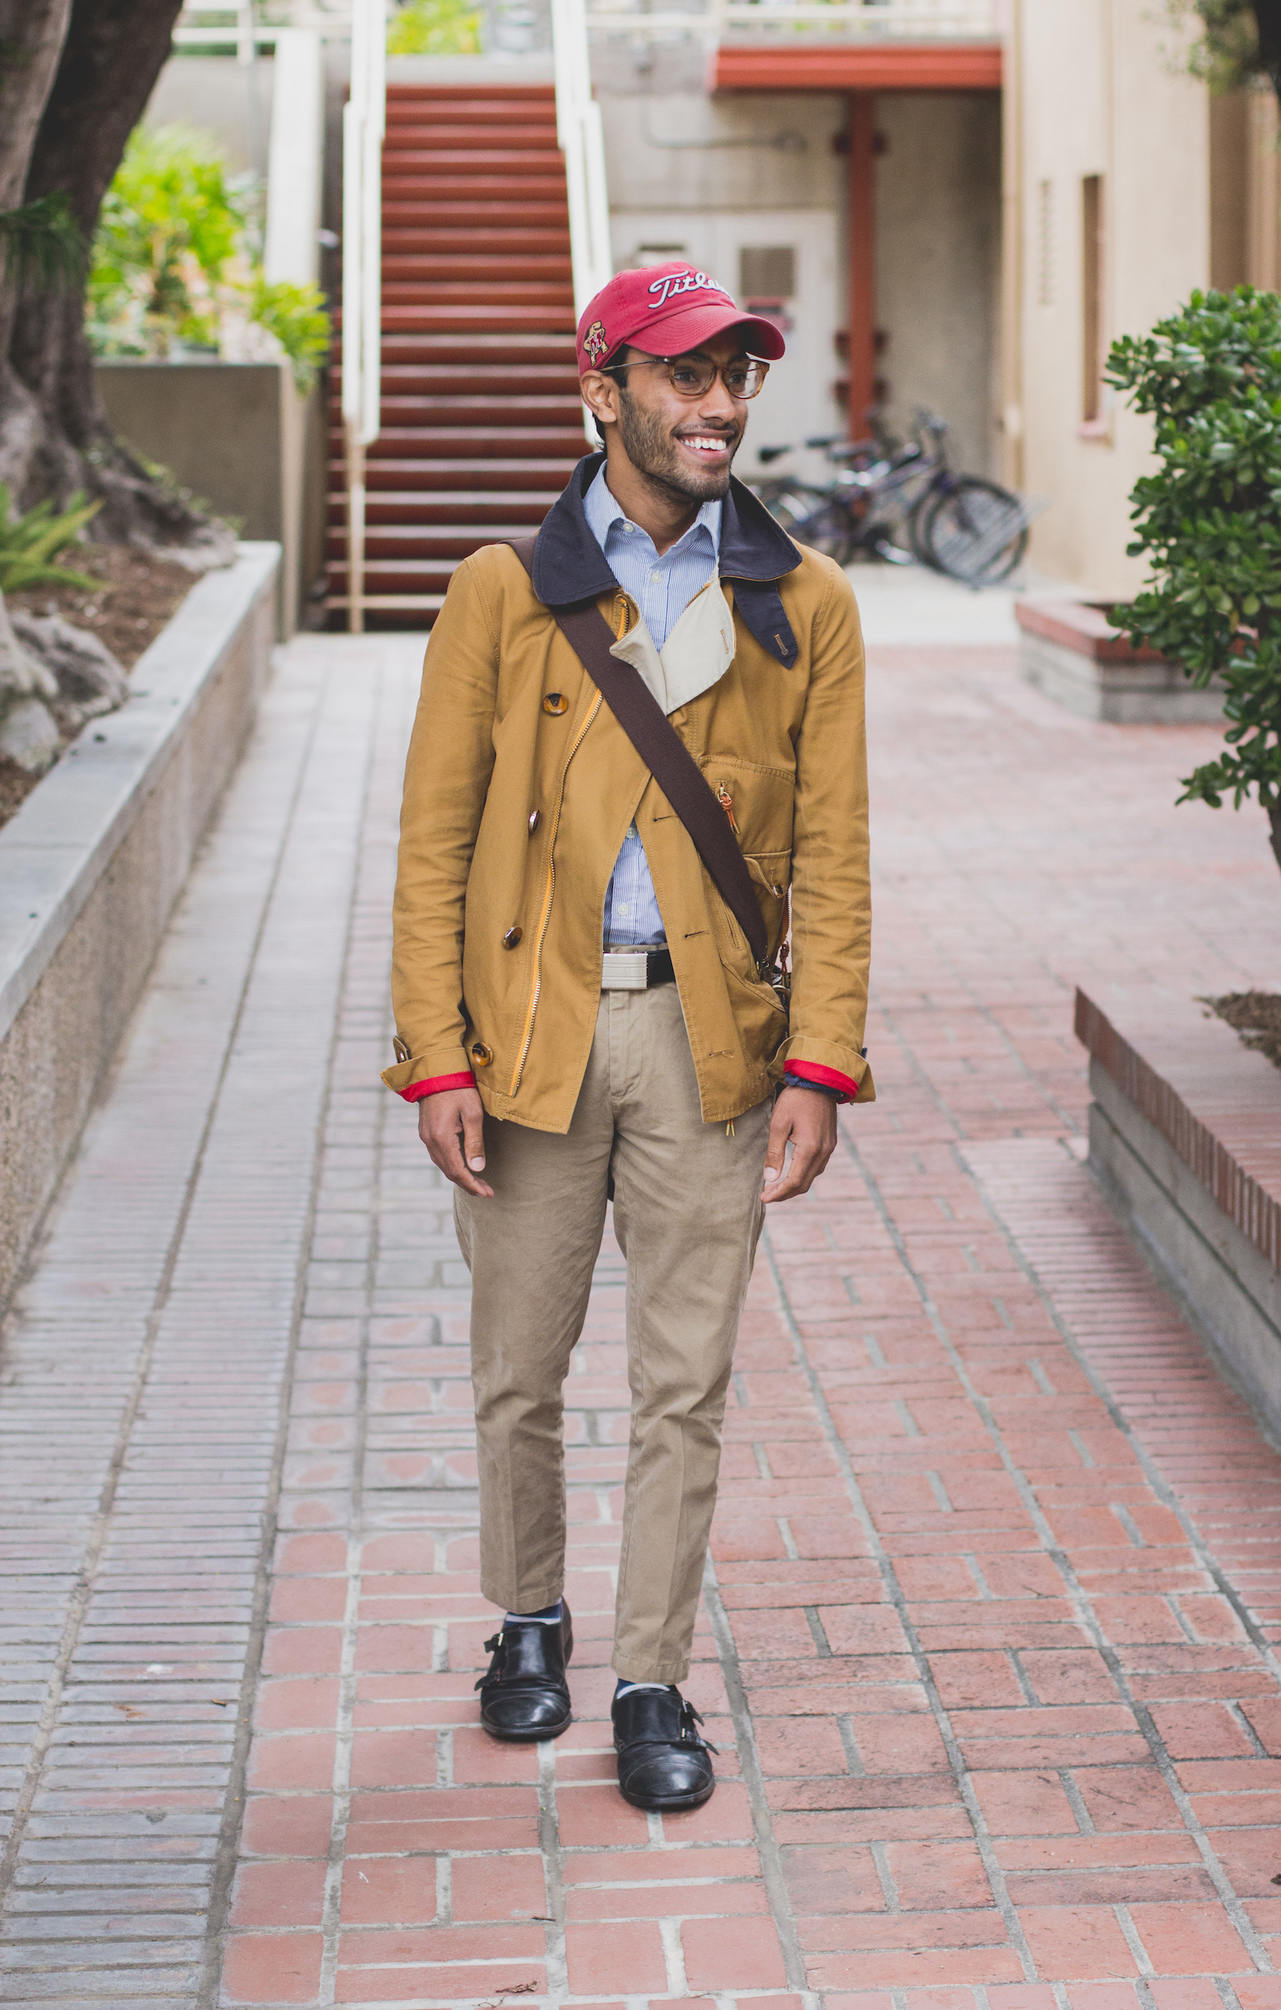 Rajesh wearing casual layers